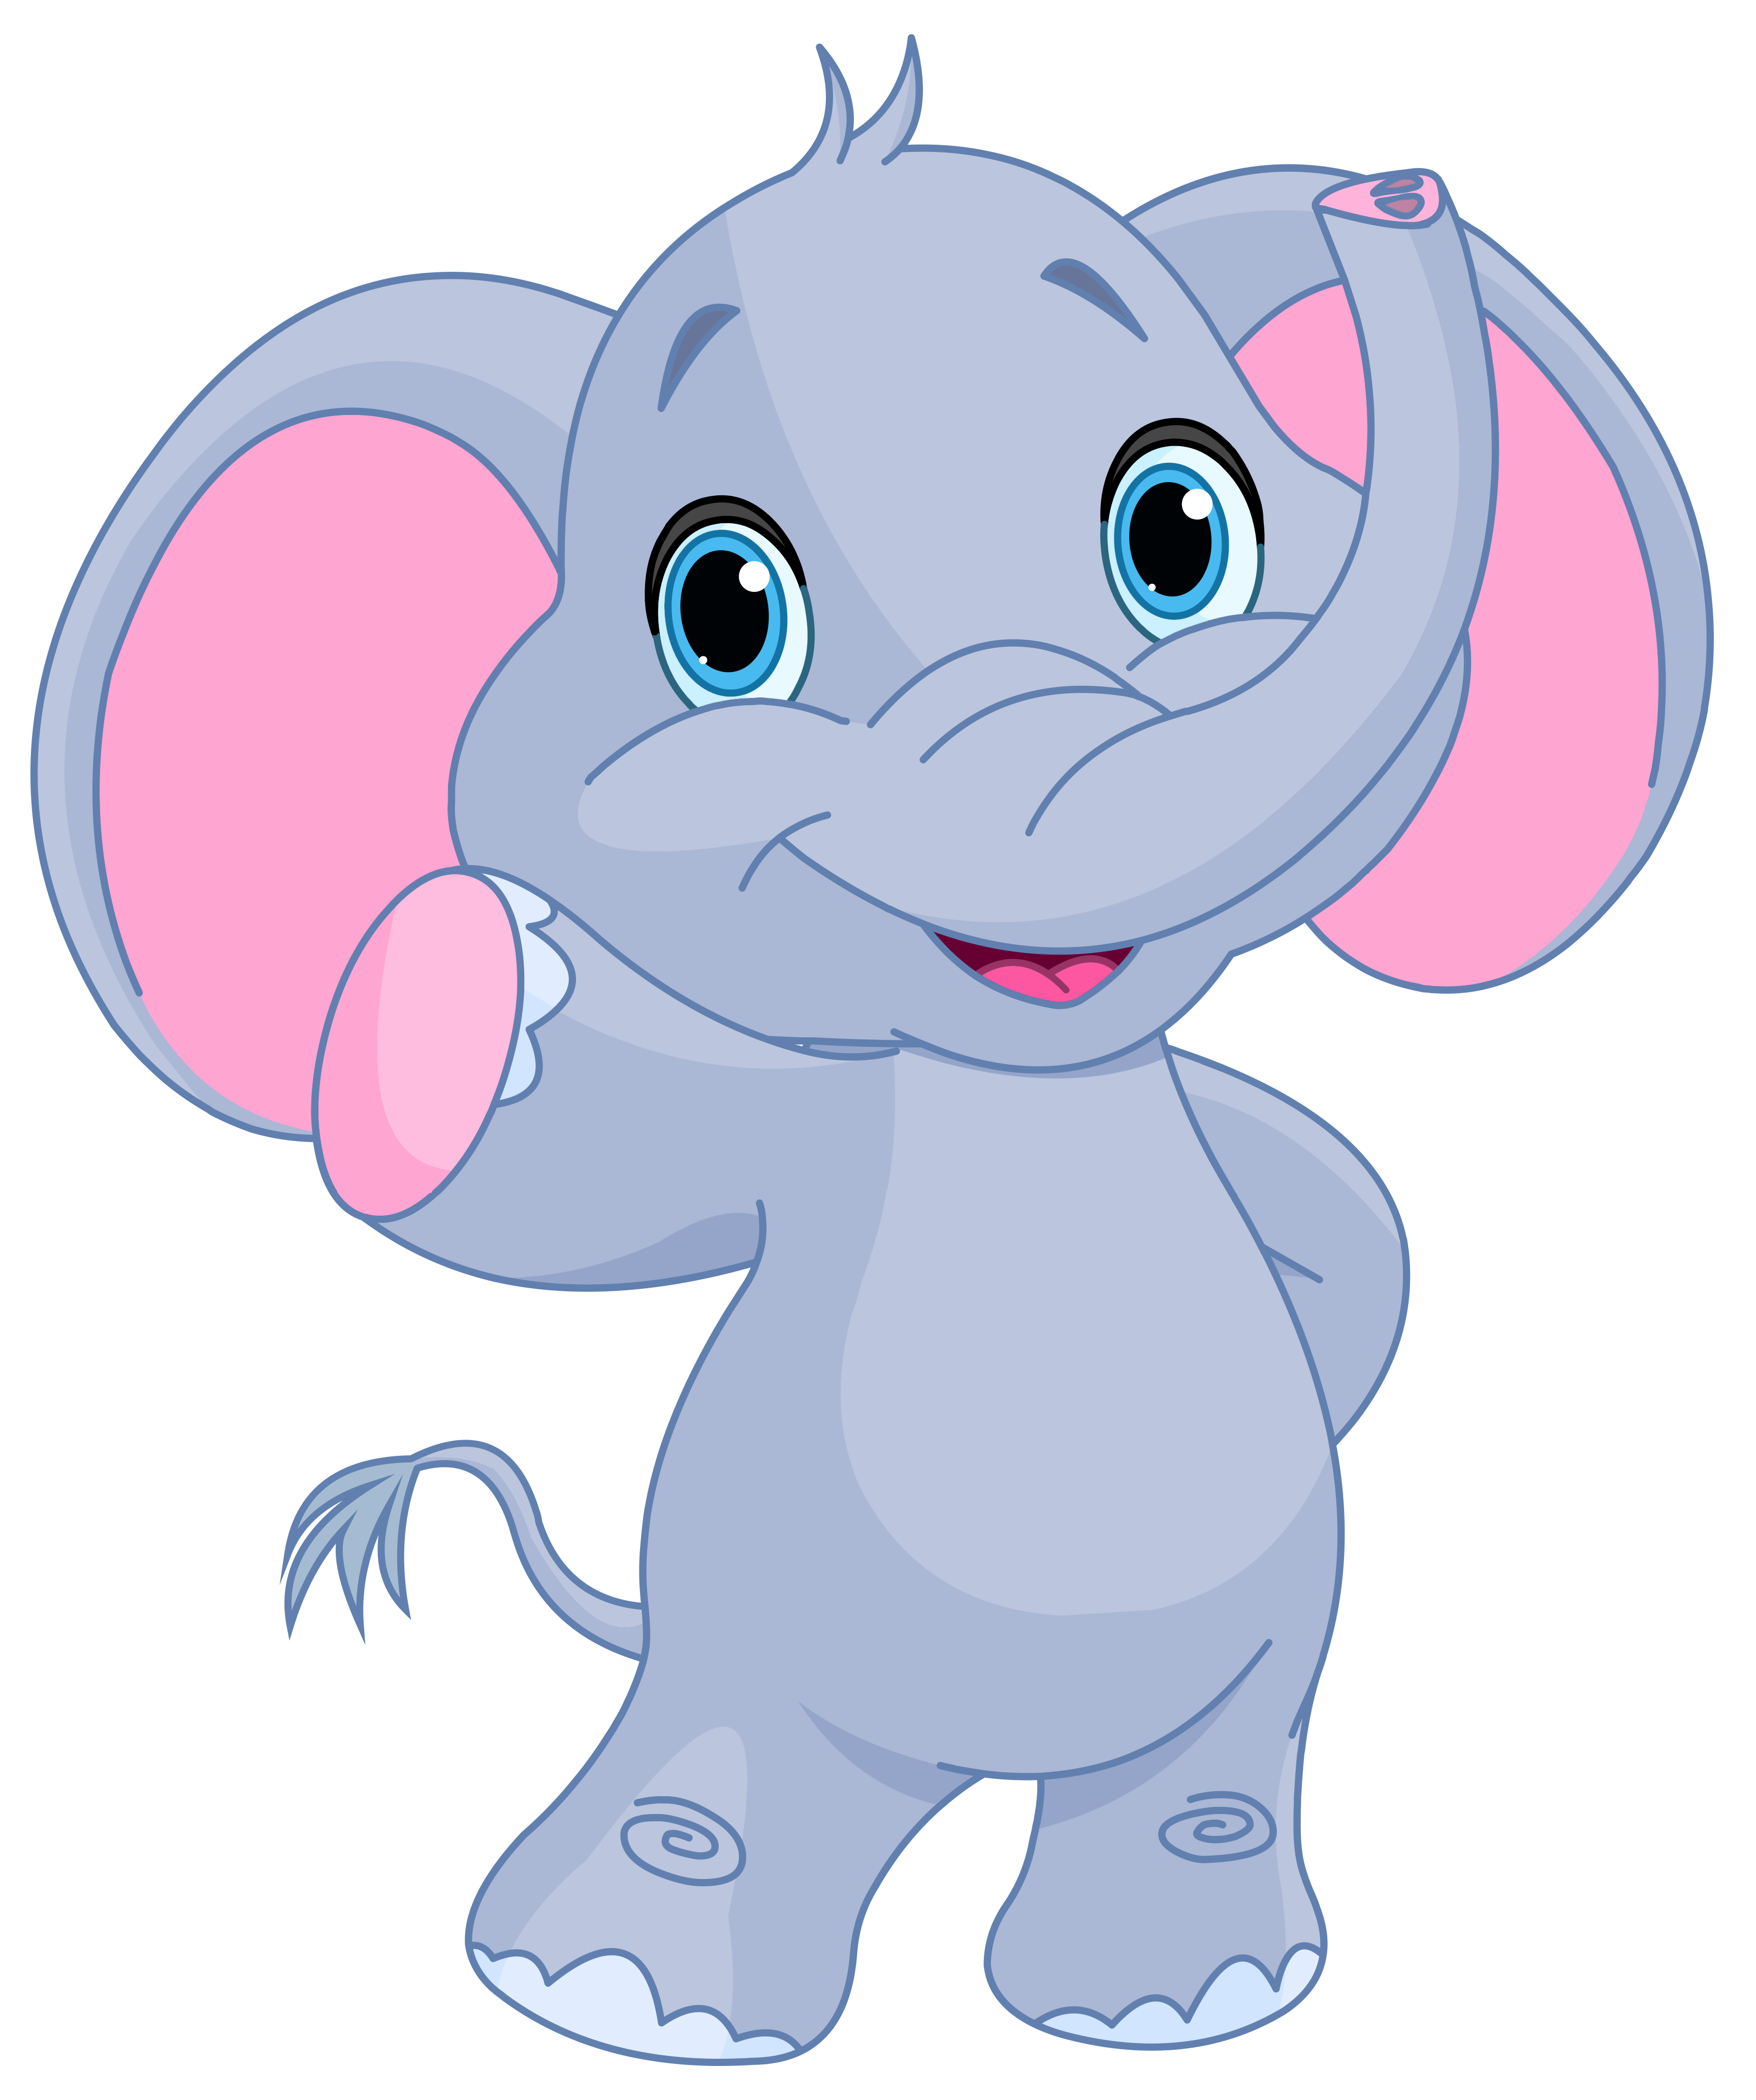 October clipart oct. Cute elephant png image